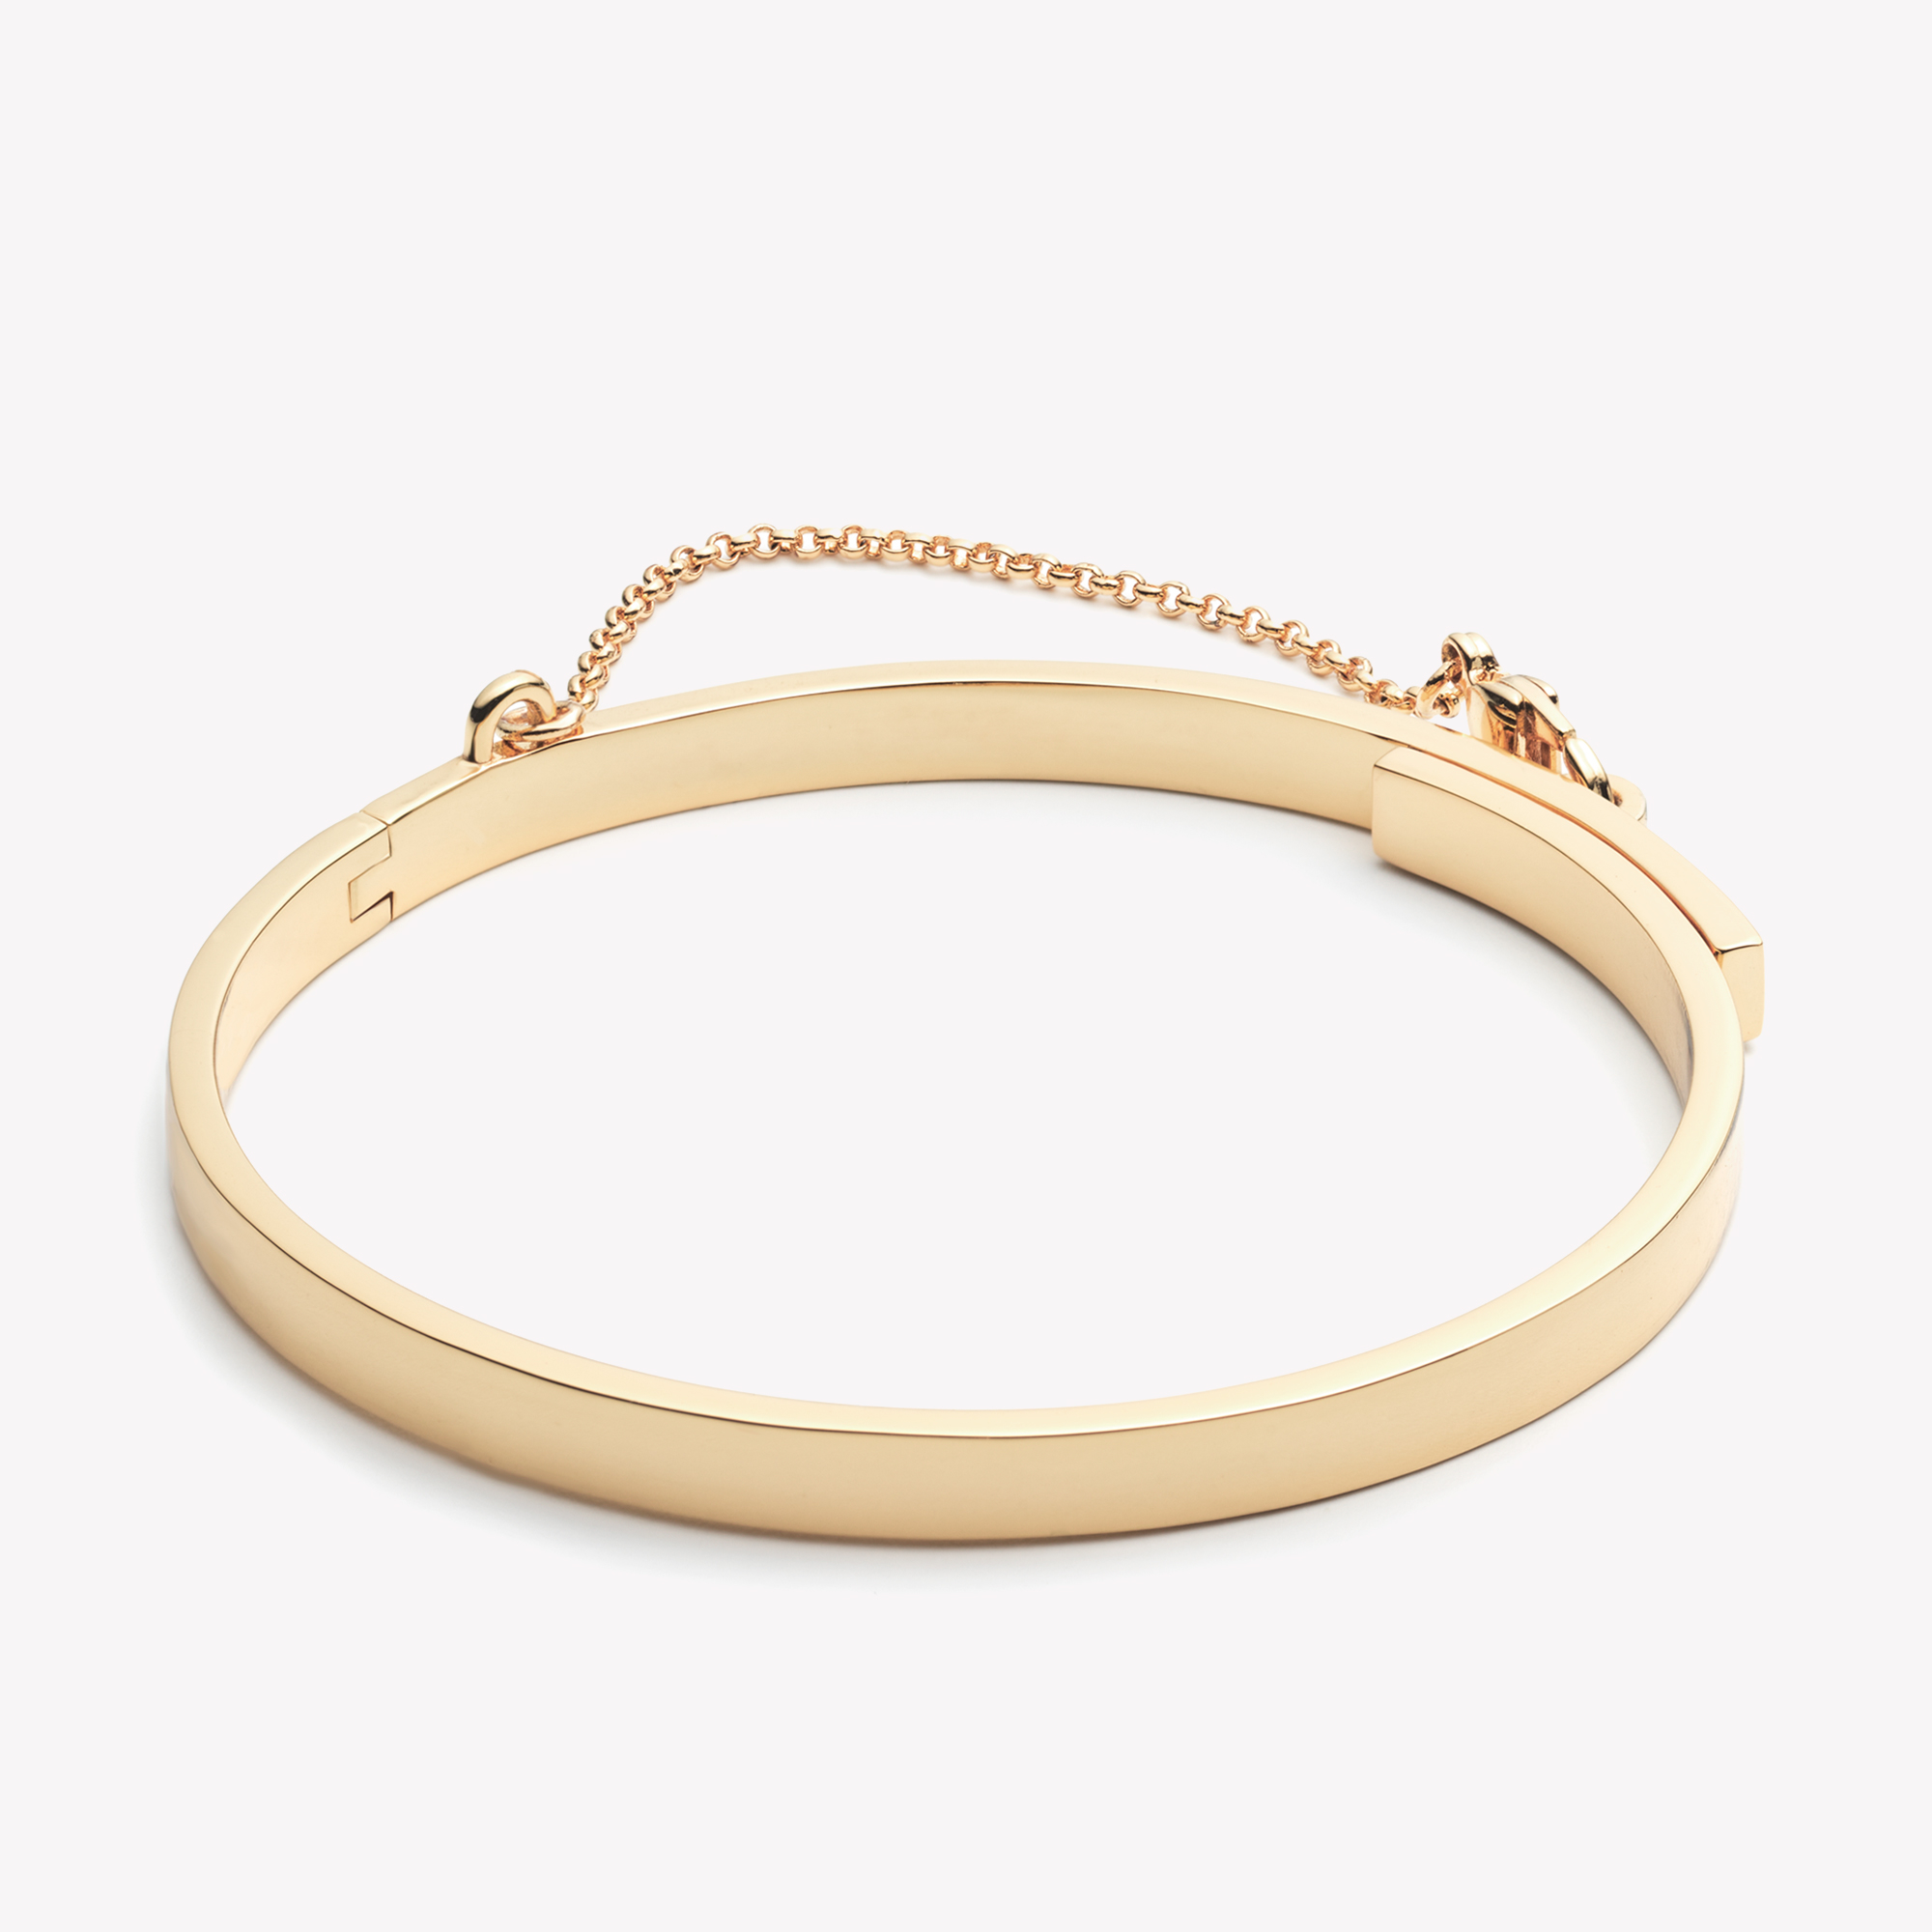 Thin Gold Chain Bracelet: Eddie Borgo Extra Thin Safety Chain Bracelet Gold In